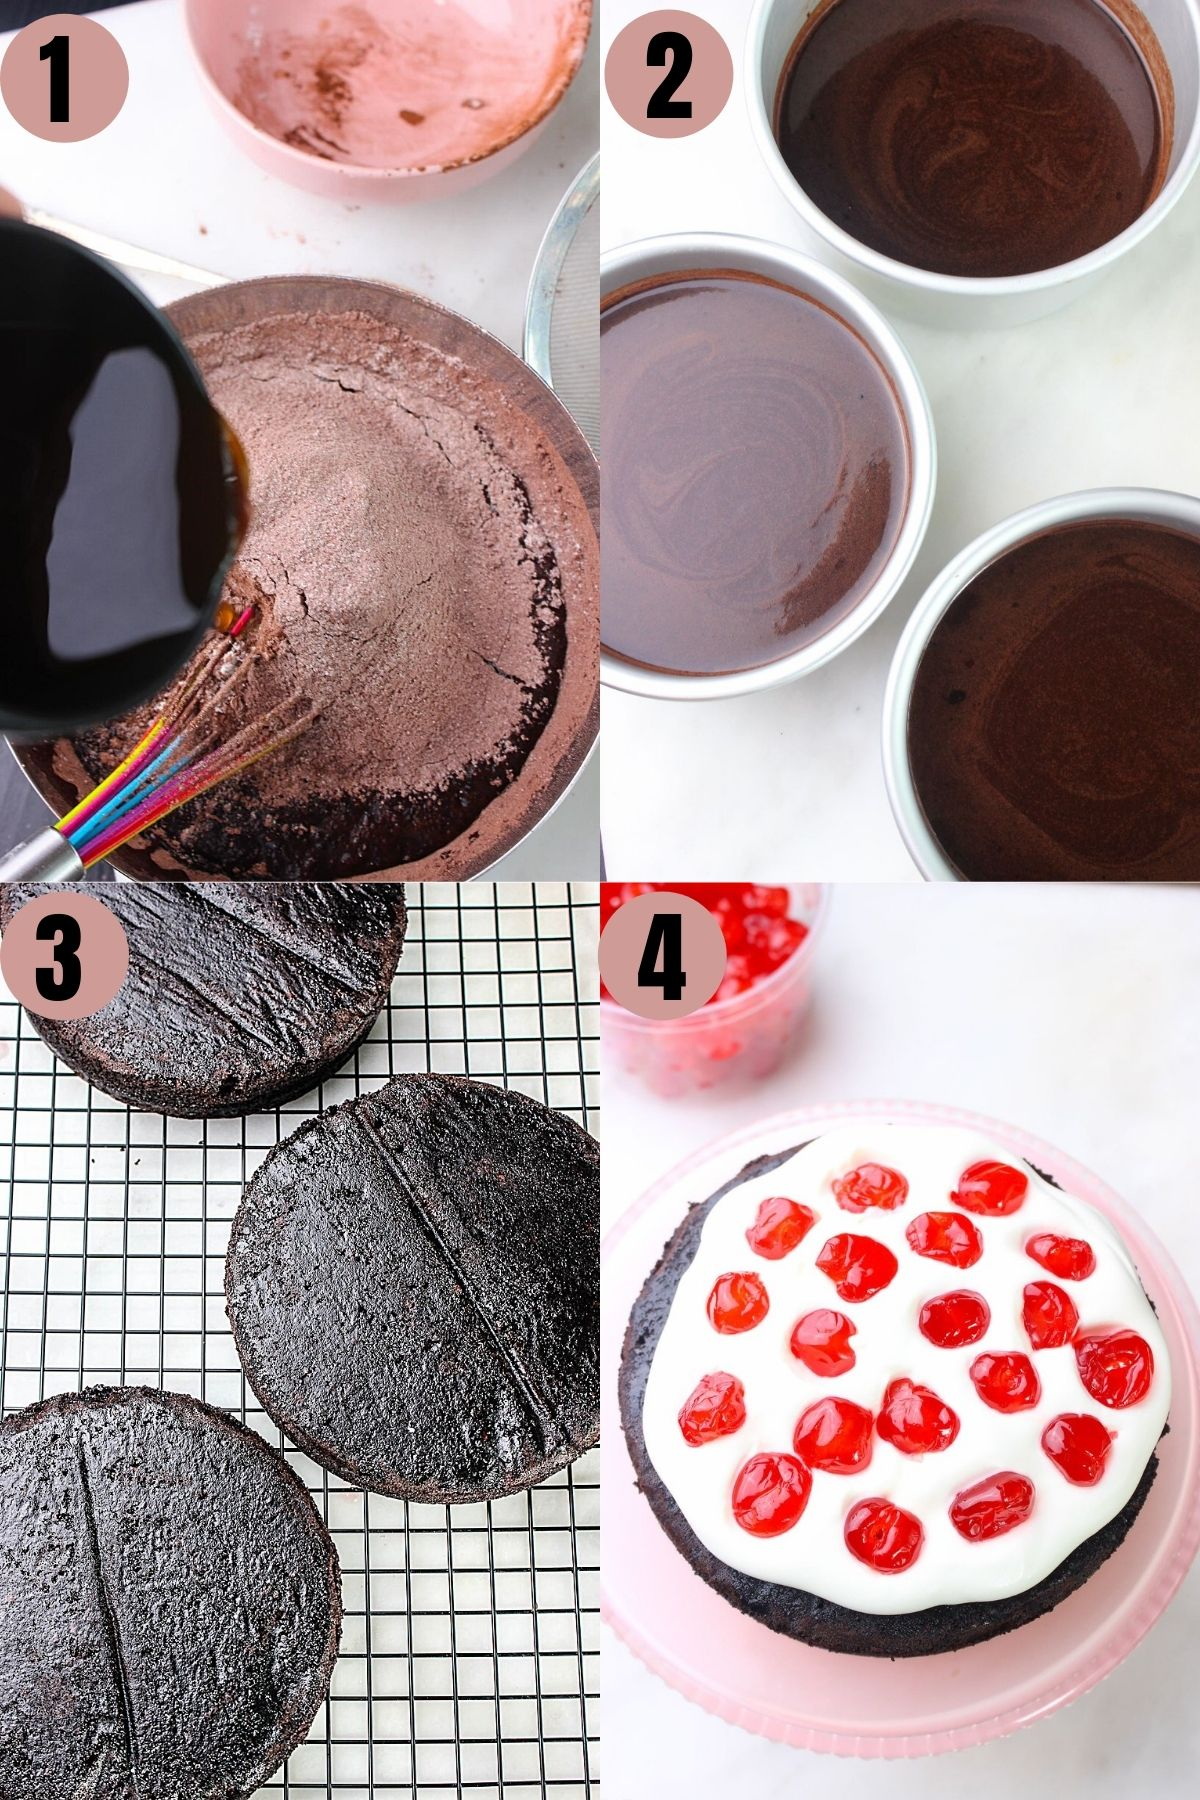 Step by step process to make chocolate cake, cool it down and assembling with whipped cream and cherries.